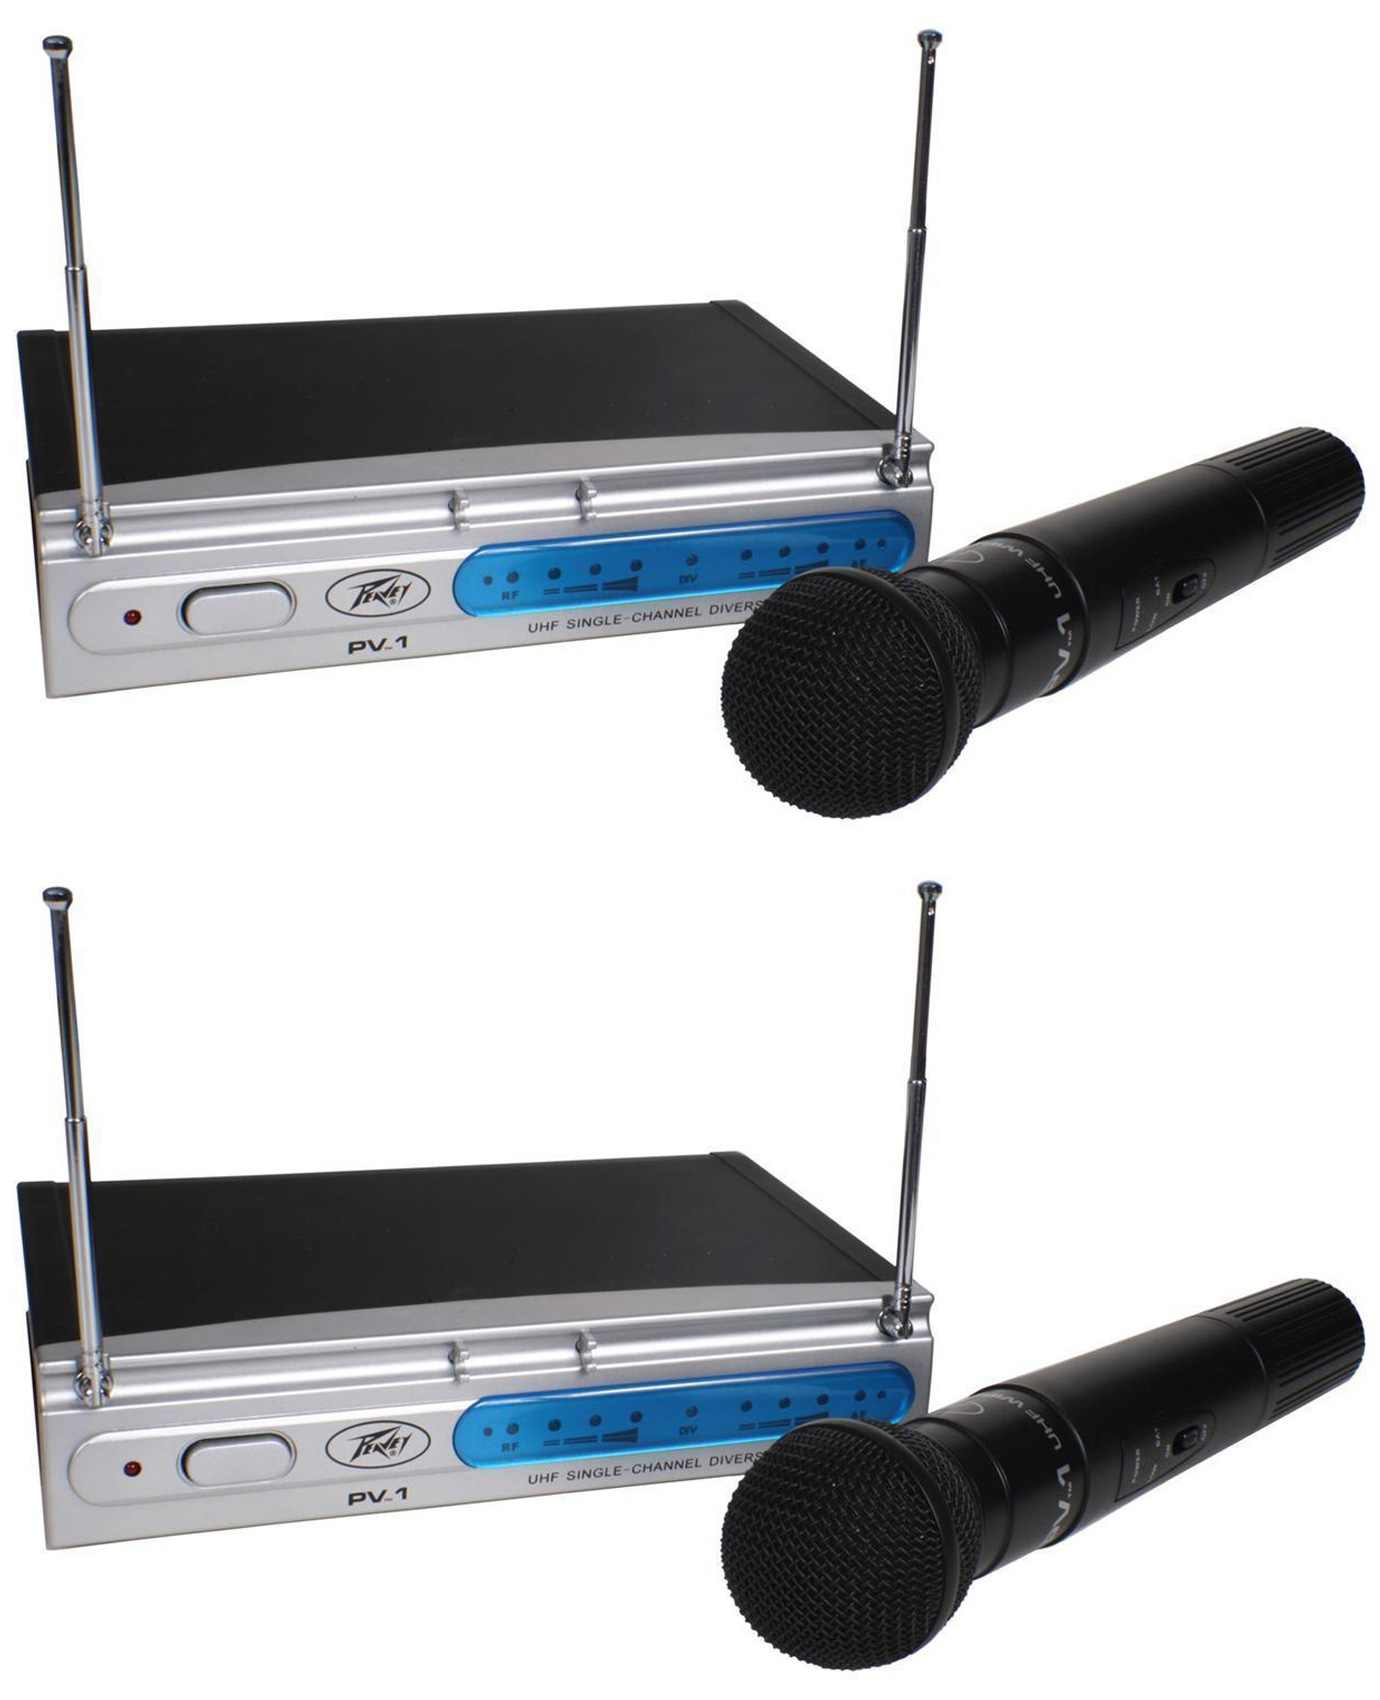 (2) Peavey PV-1 V1 HH 198.950MHZ VHF Series Wireless Handheld Microphone Systems by Peavey